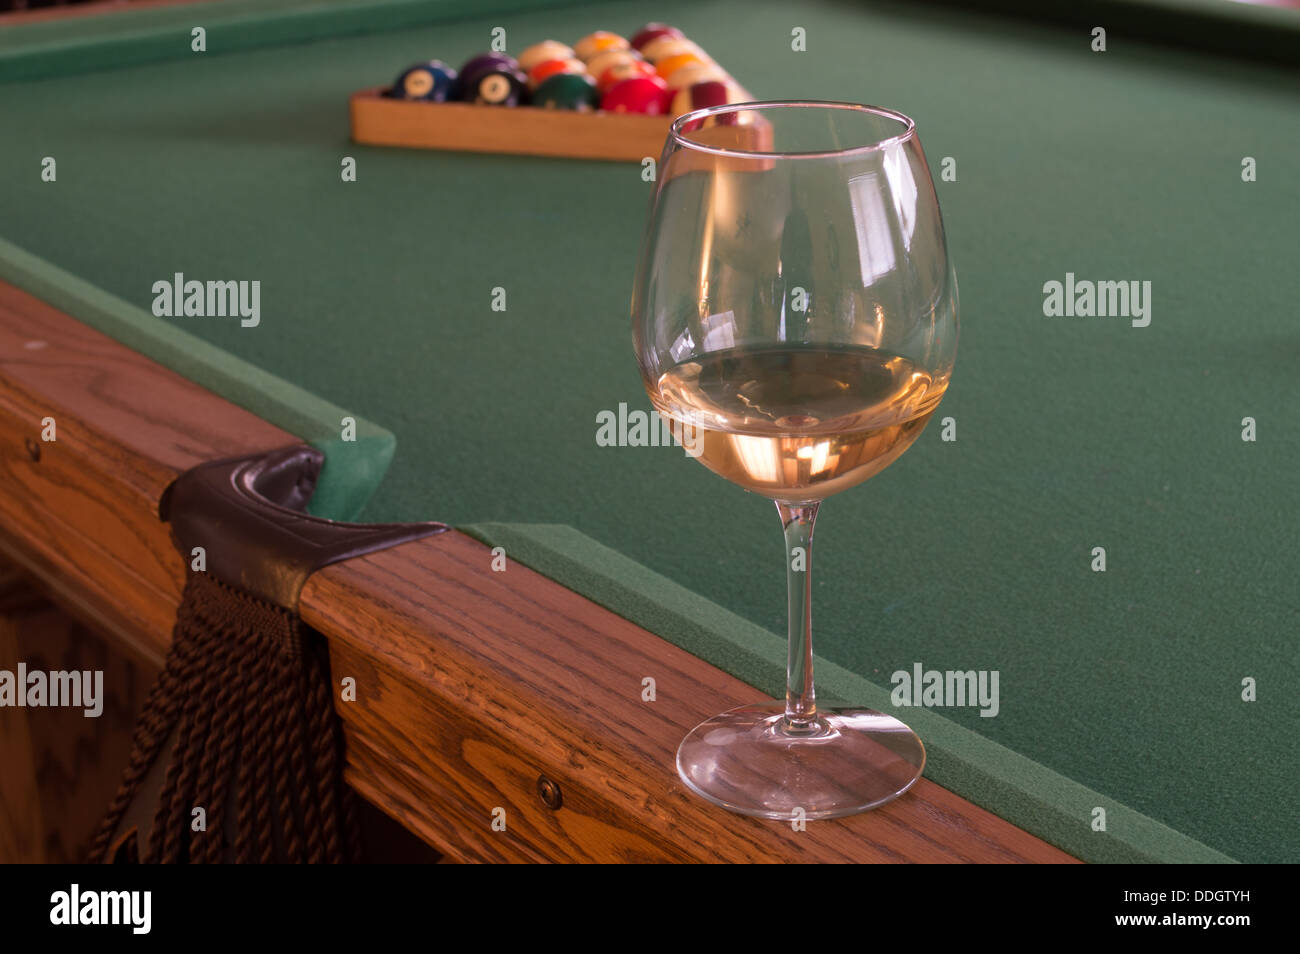 White Wine In A Single Clear Glass On A Pool Table With A Rack Of - Clear pool table